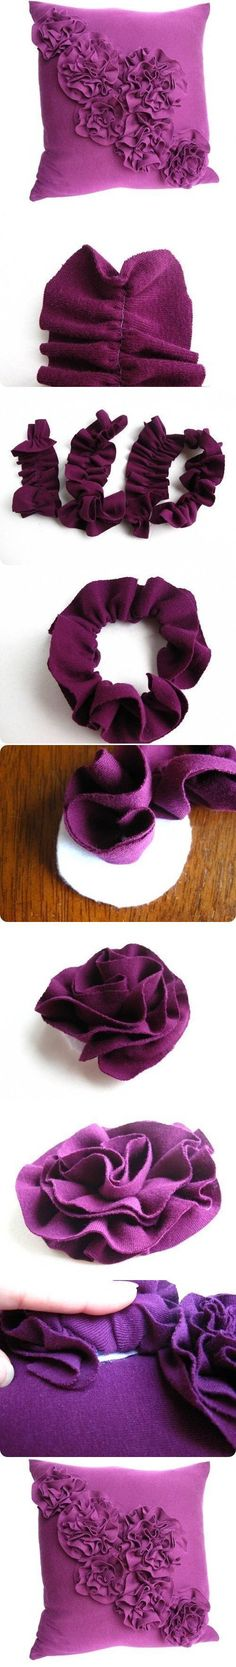 DIY Flower Pillow Decoration